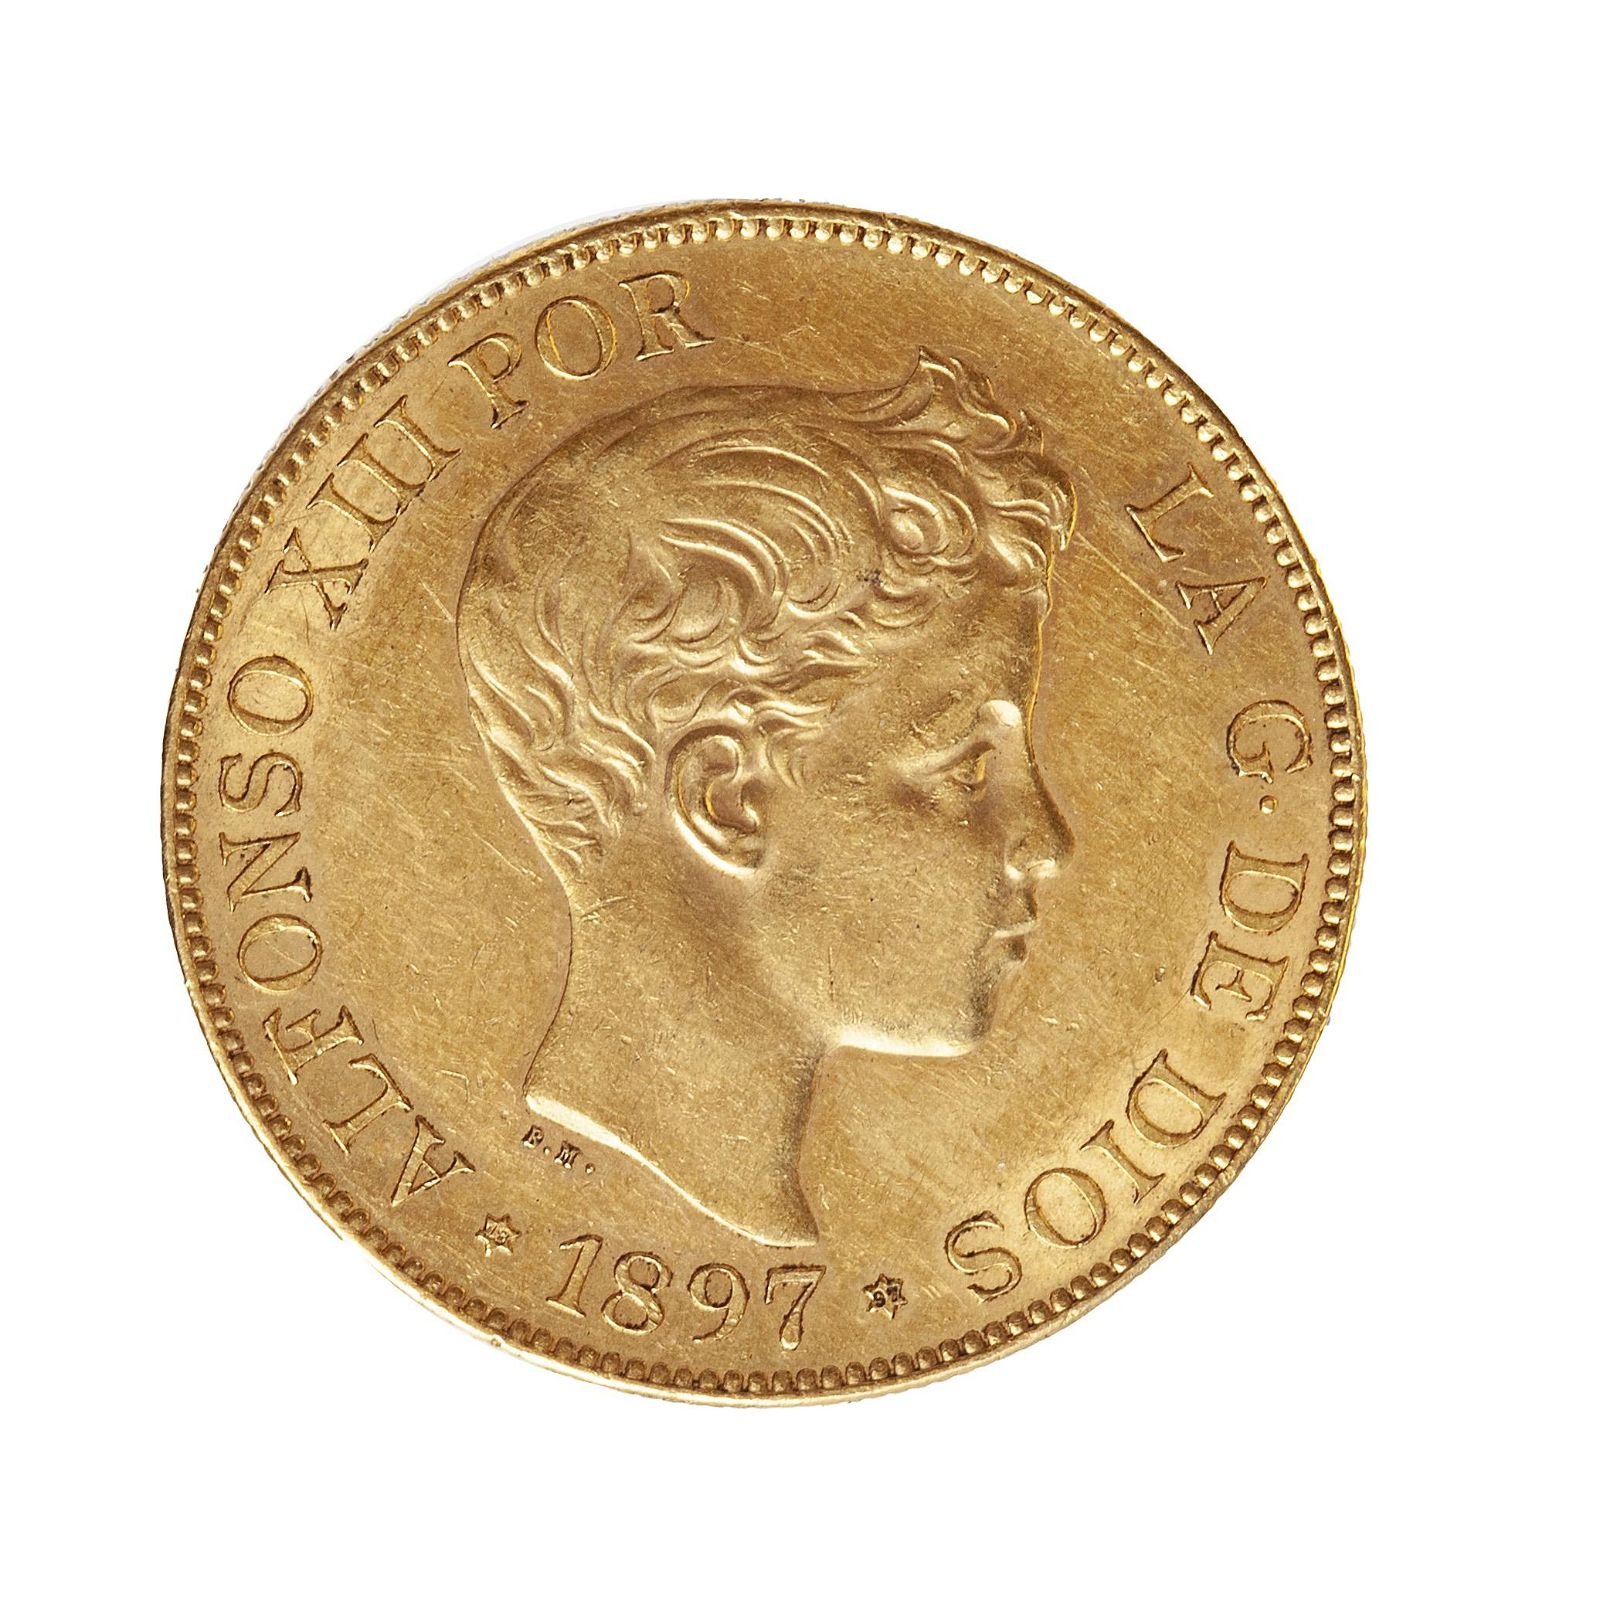 Coin of 100 pesetas of Alfonso XIII, 1897, mint V.